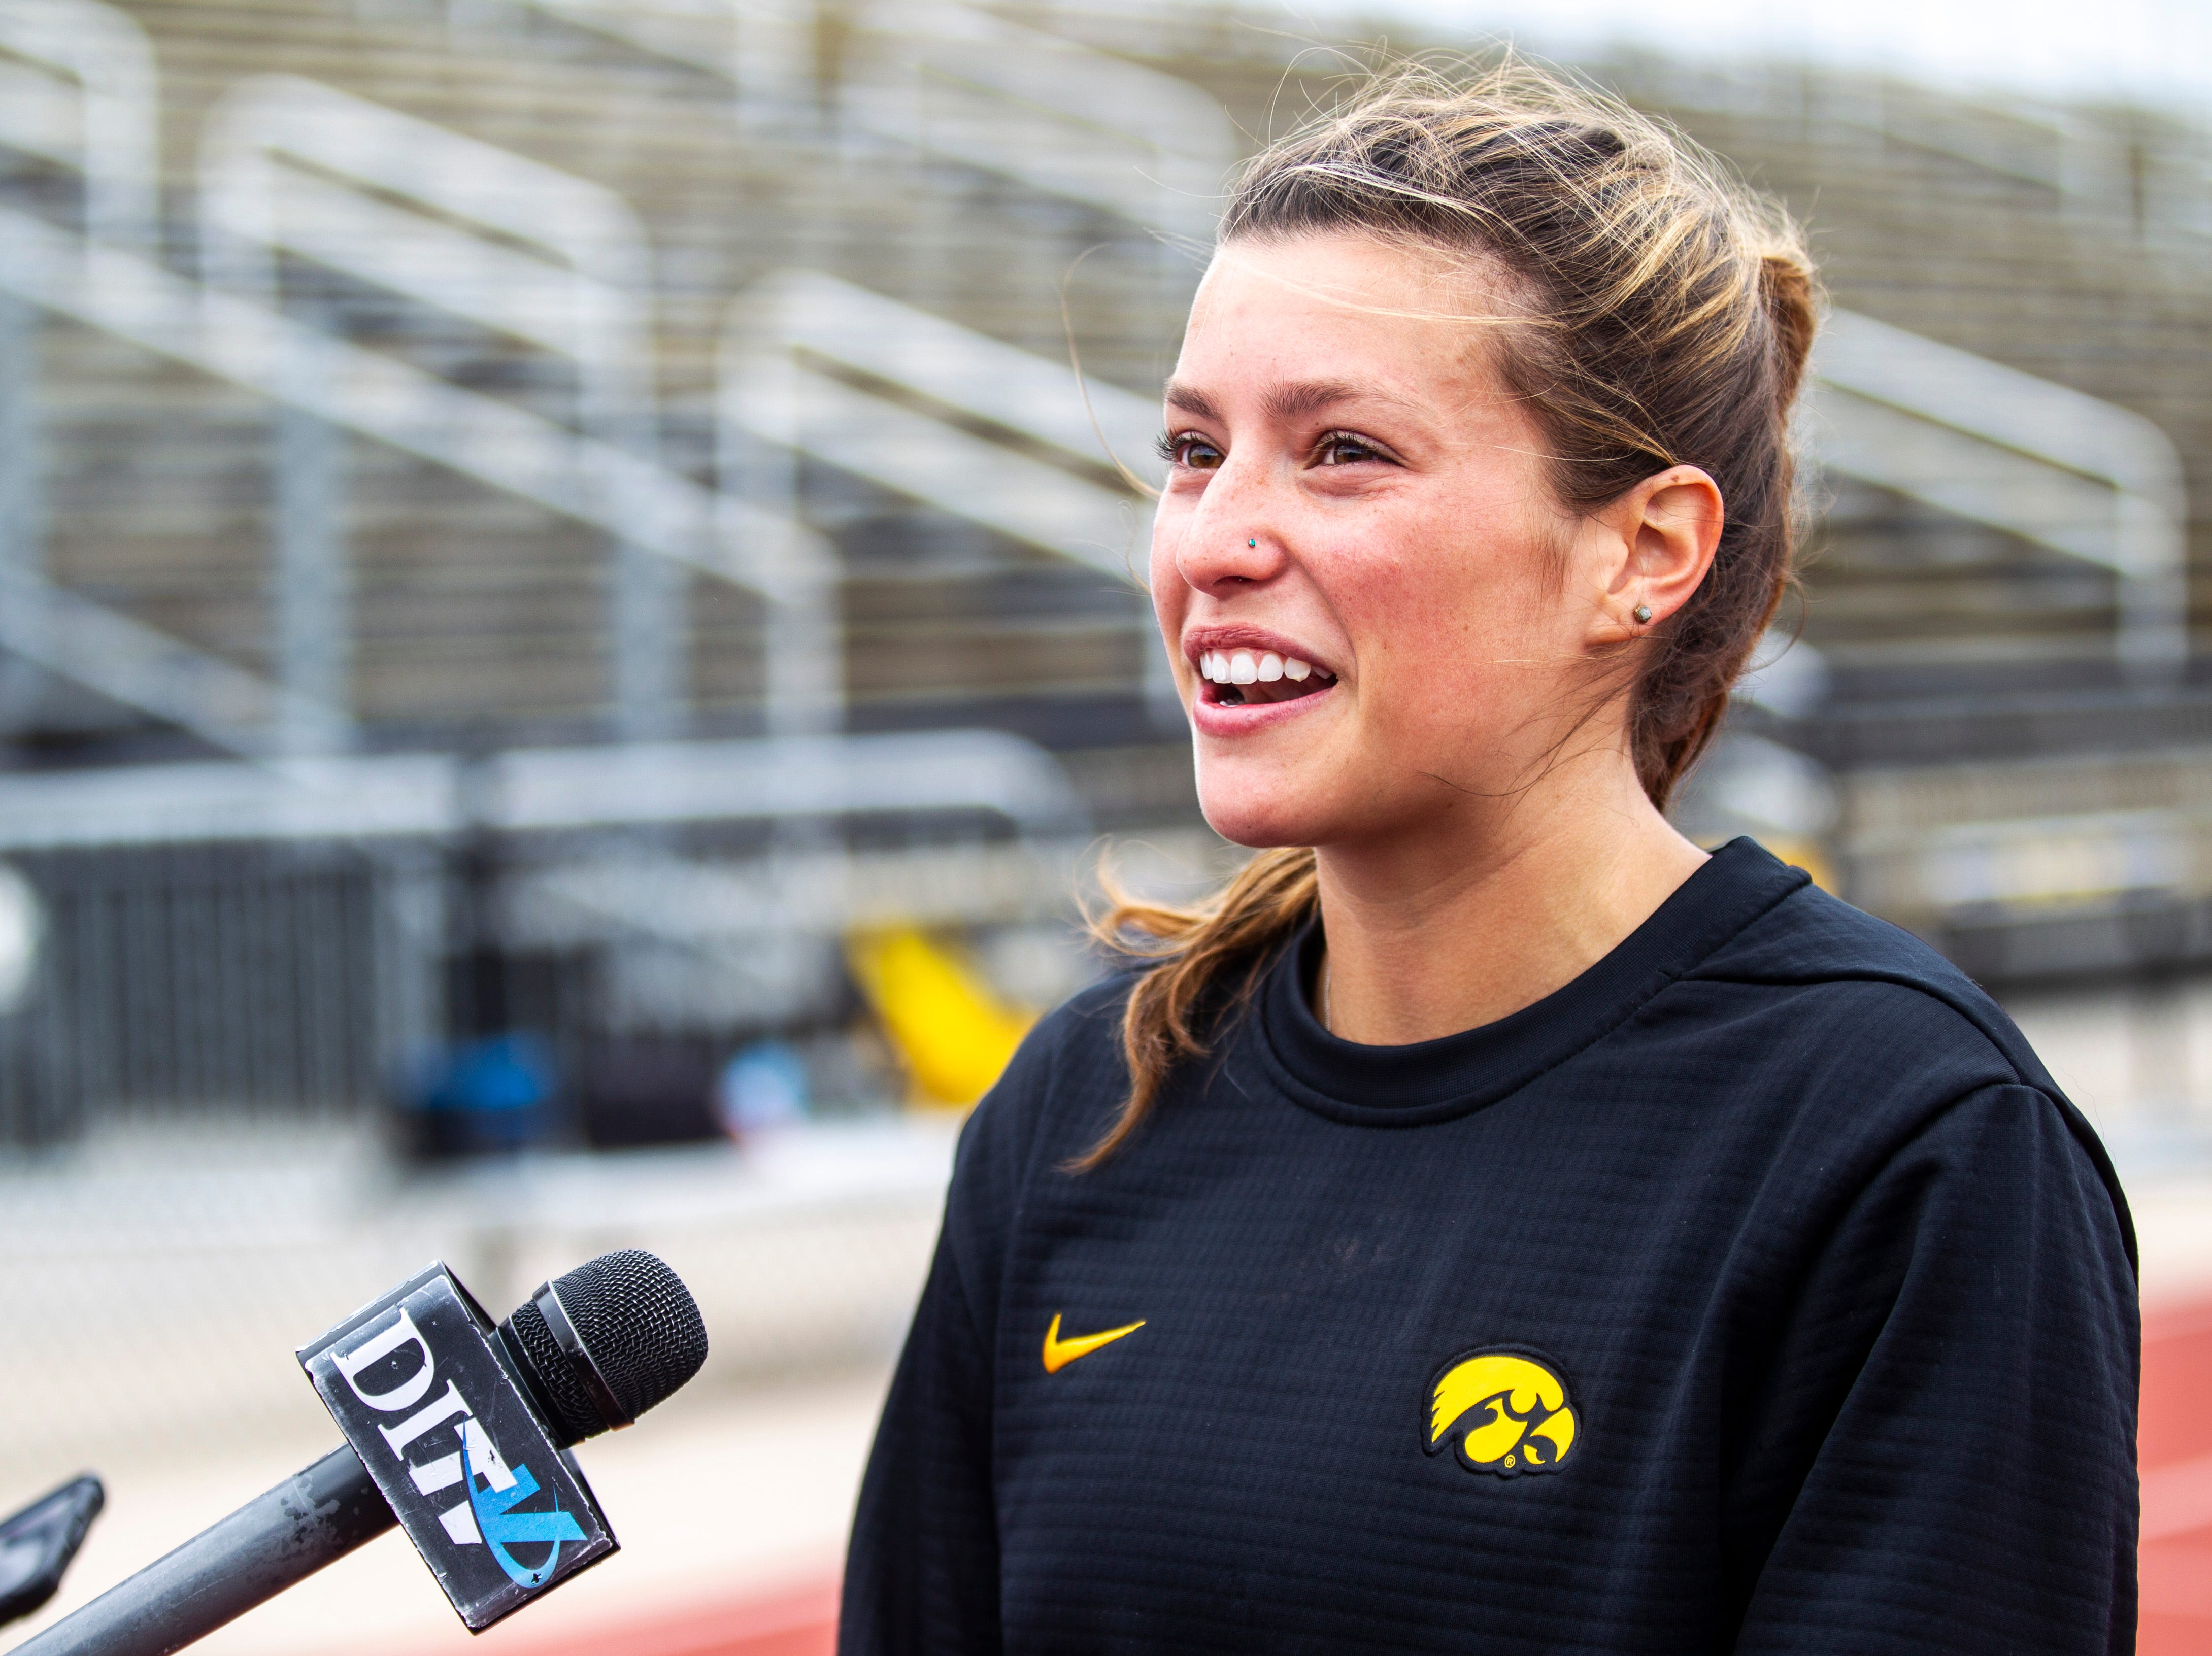 Iowa junior 800 meter runner Taylor Arco speaks with reporters, Tuesday, May 7, 2019, Francis X. Cretzmeyer Track in Iowa City, Iowa.